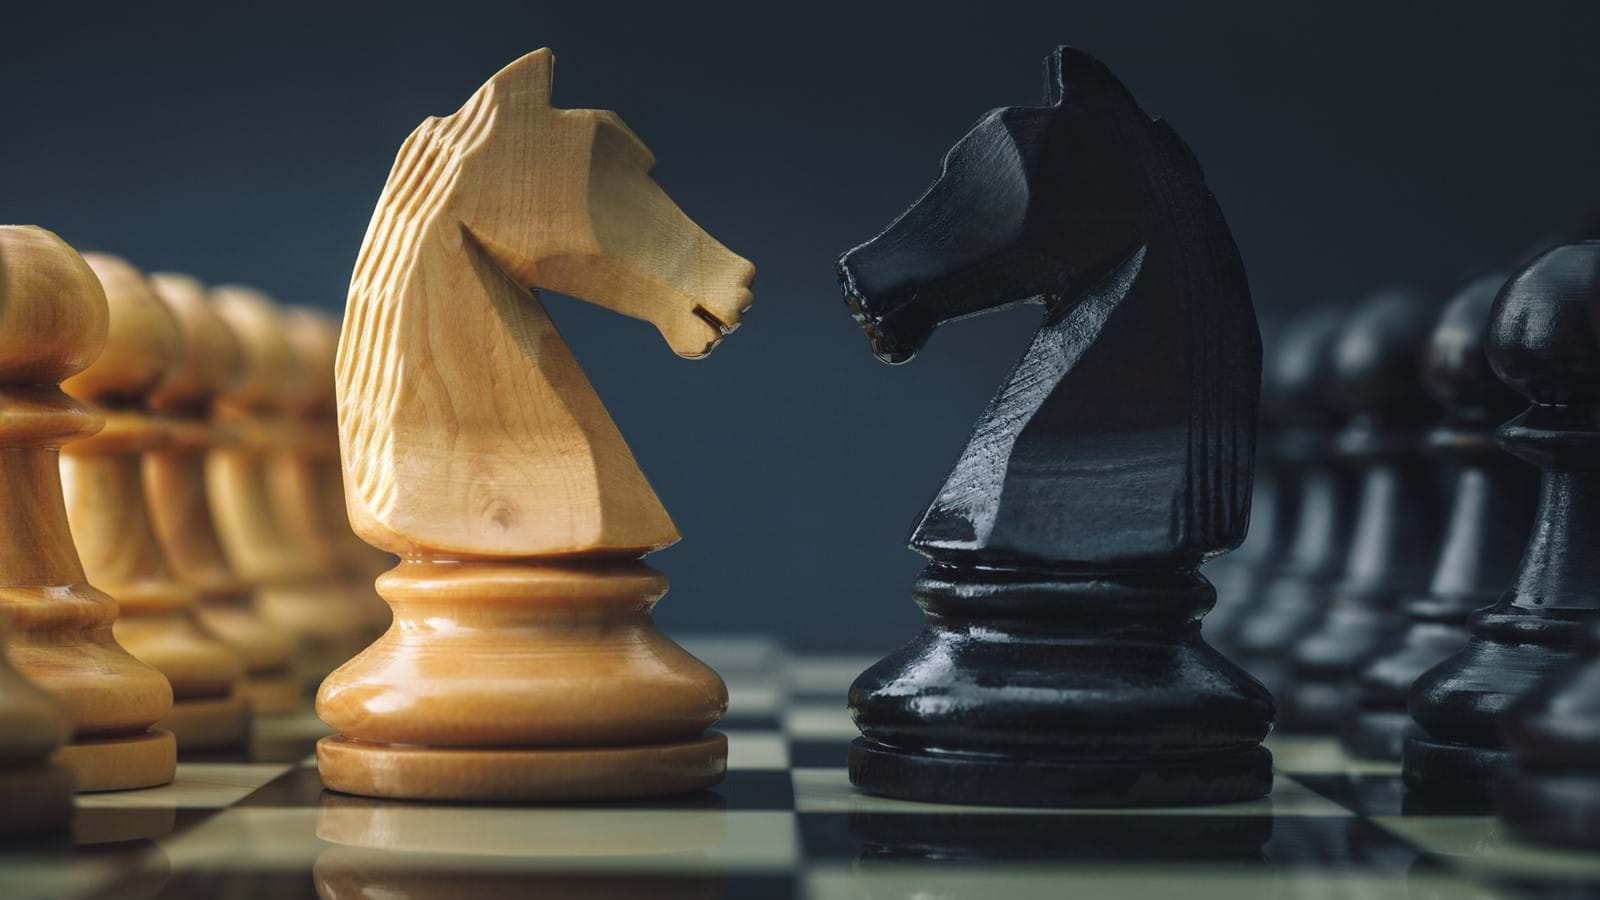 Chess pieces facing off in preparation for debate